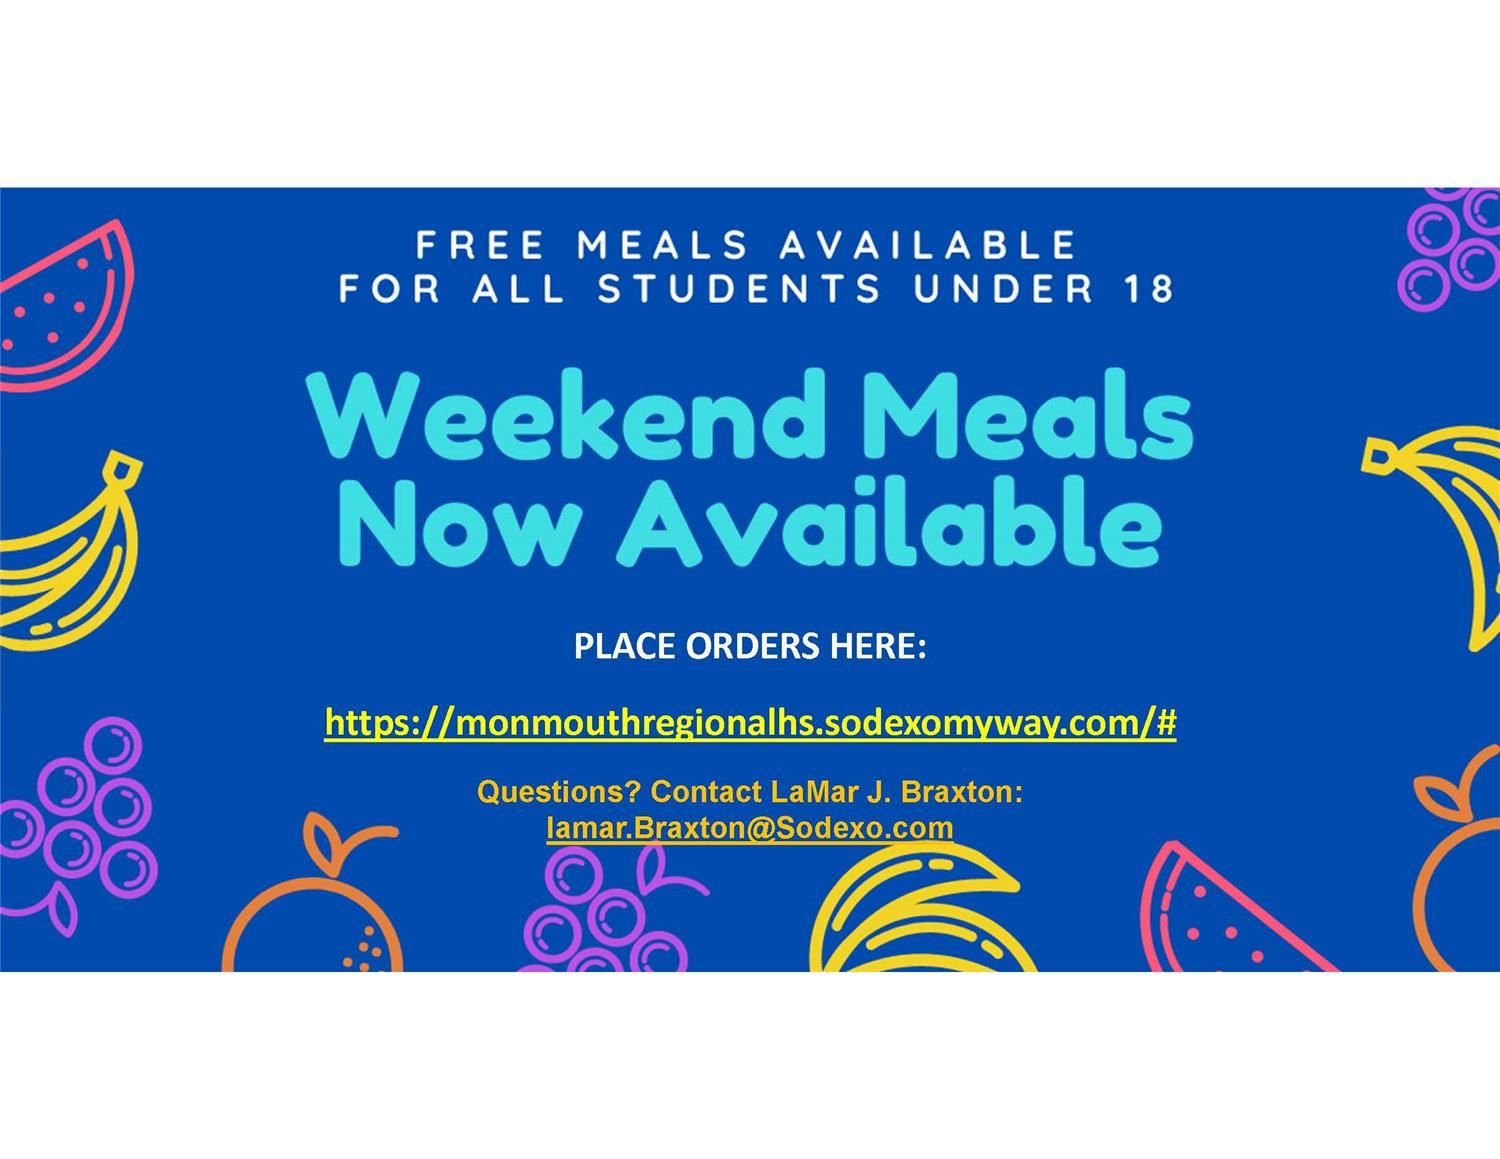 Weekend Meals are Available